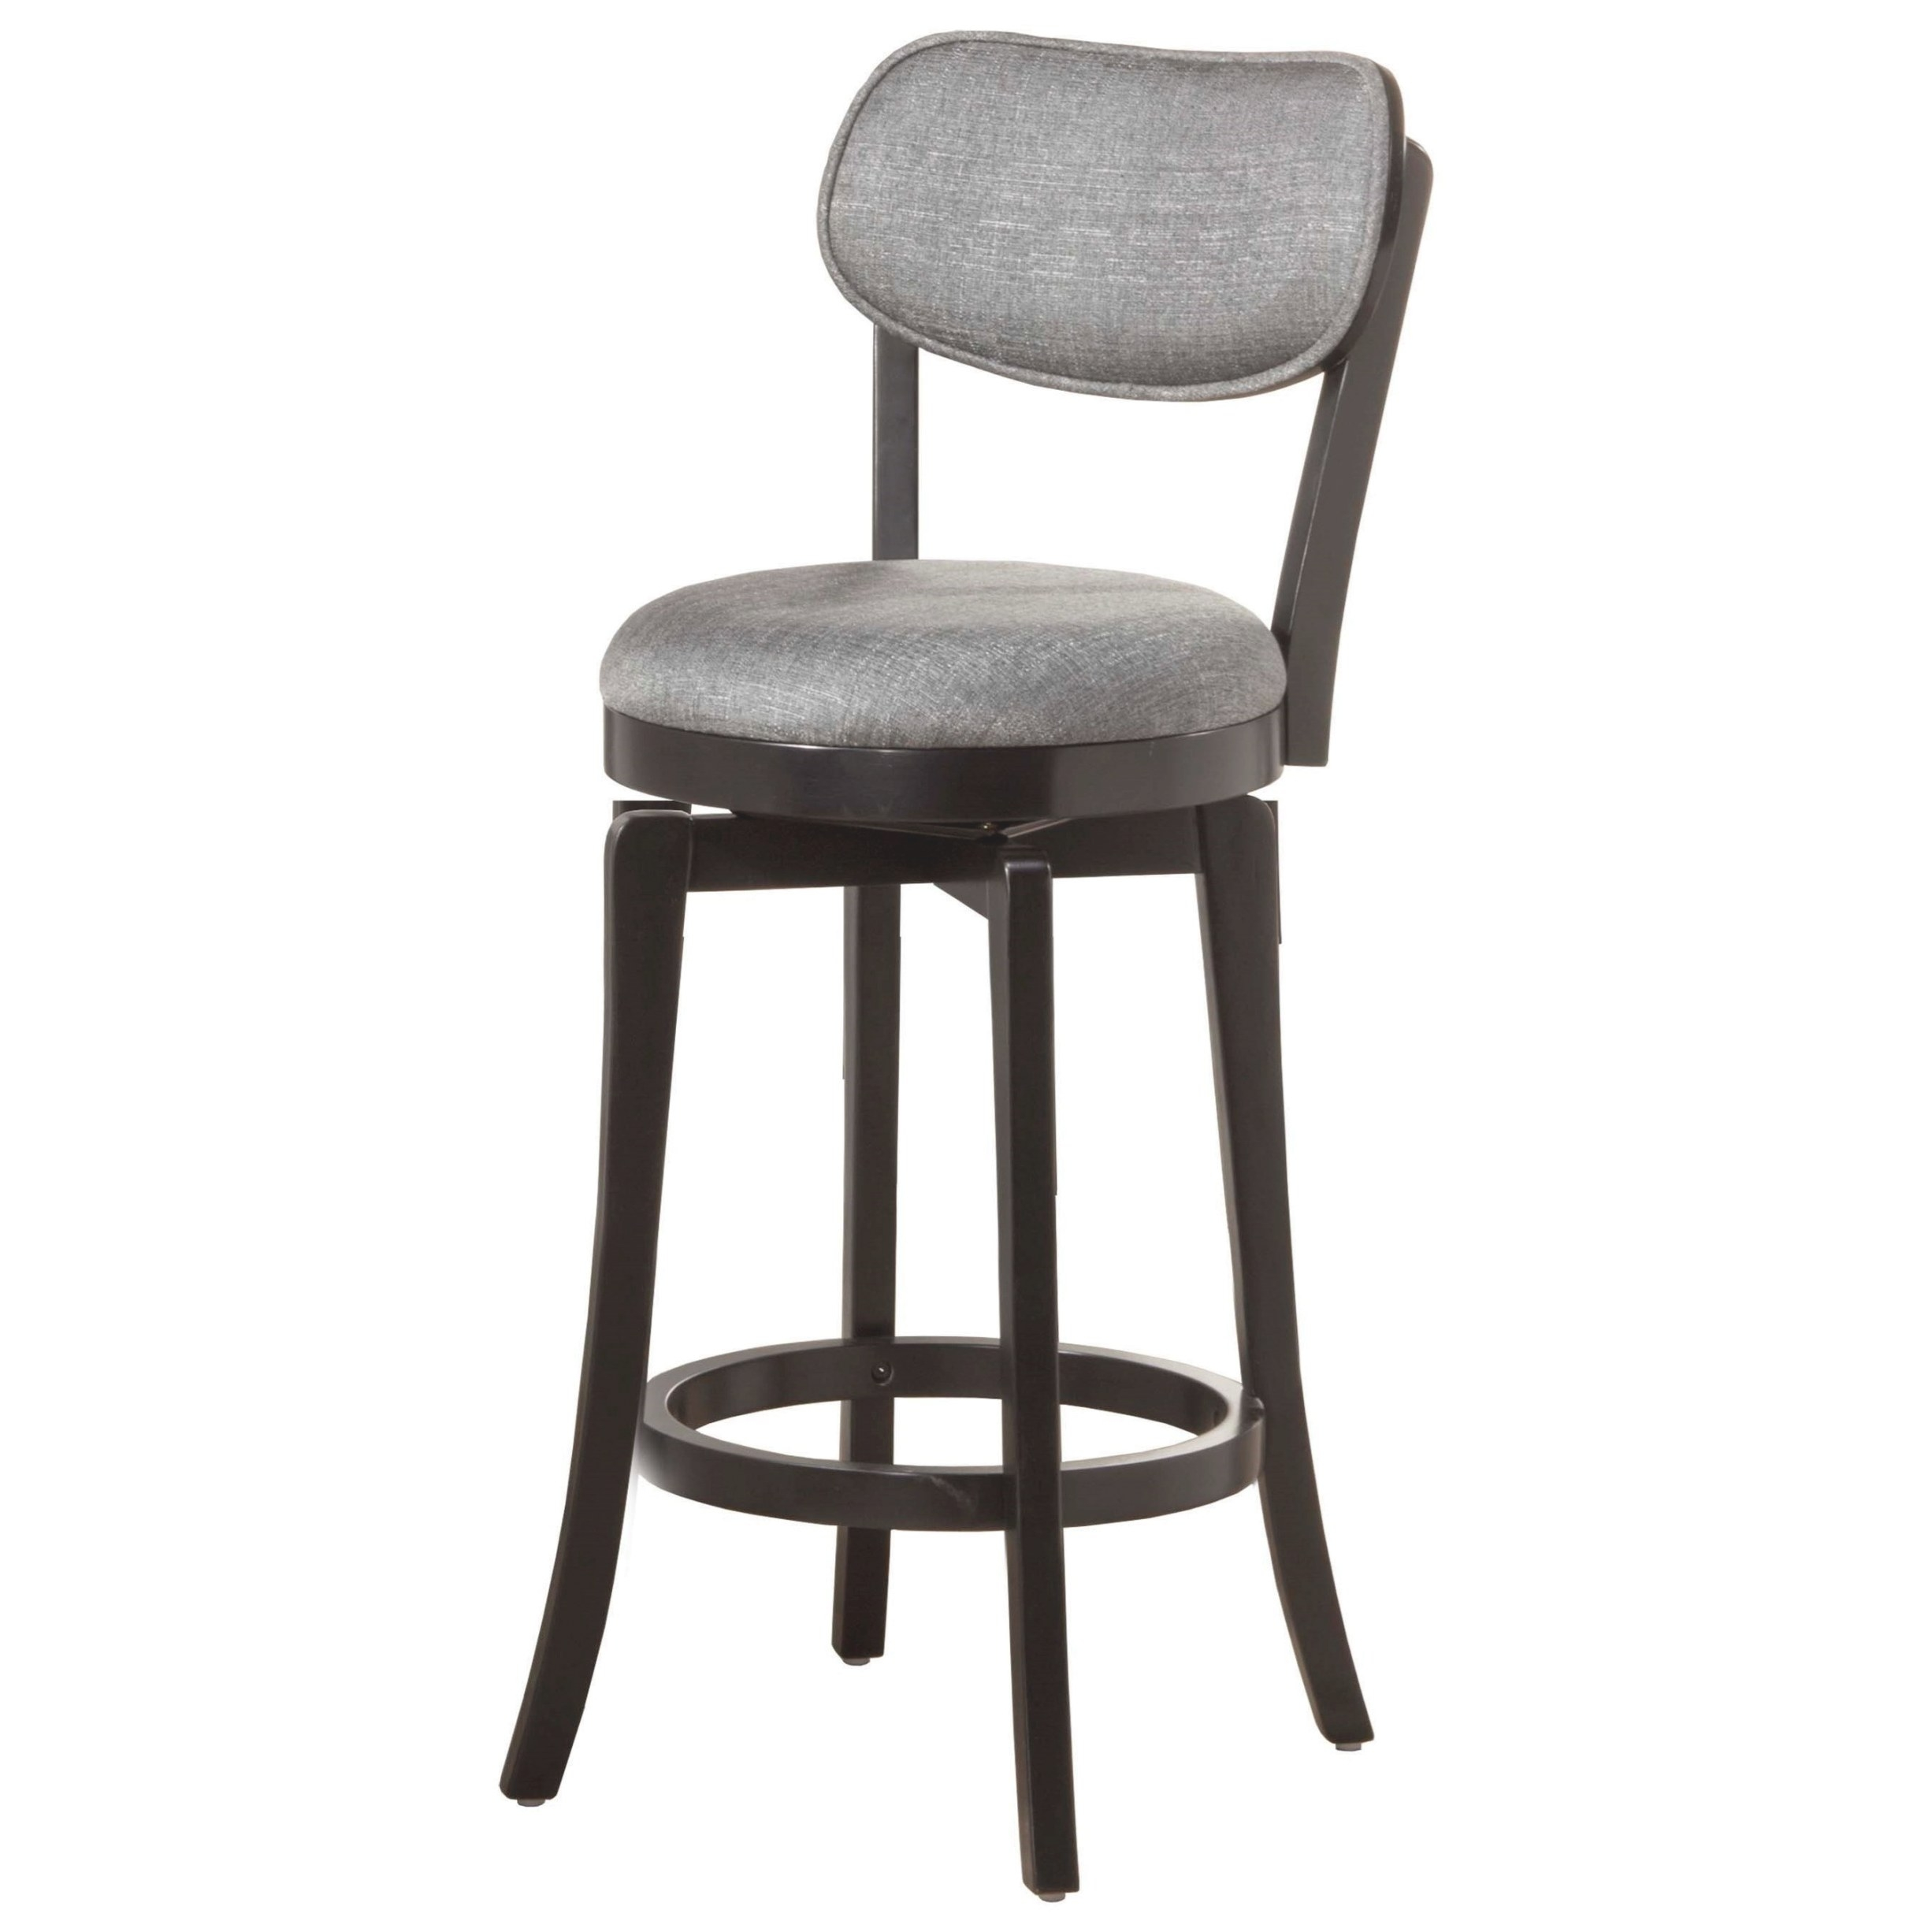 Hillsdale Wood Stools Swivel Counter Stool With Gray Full with Swivel Bar Stools With Backs